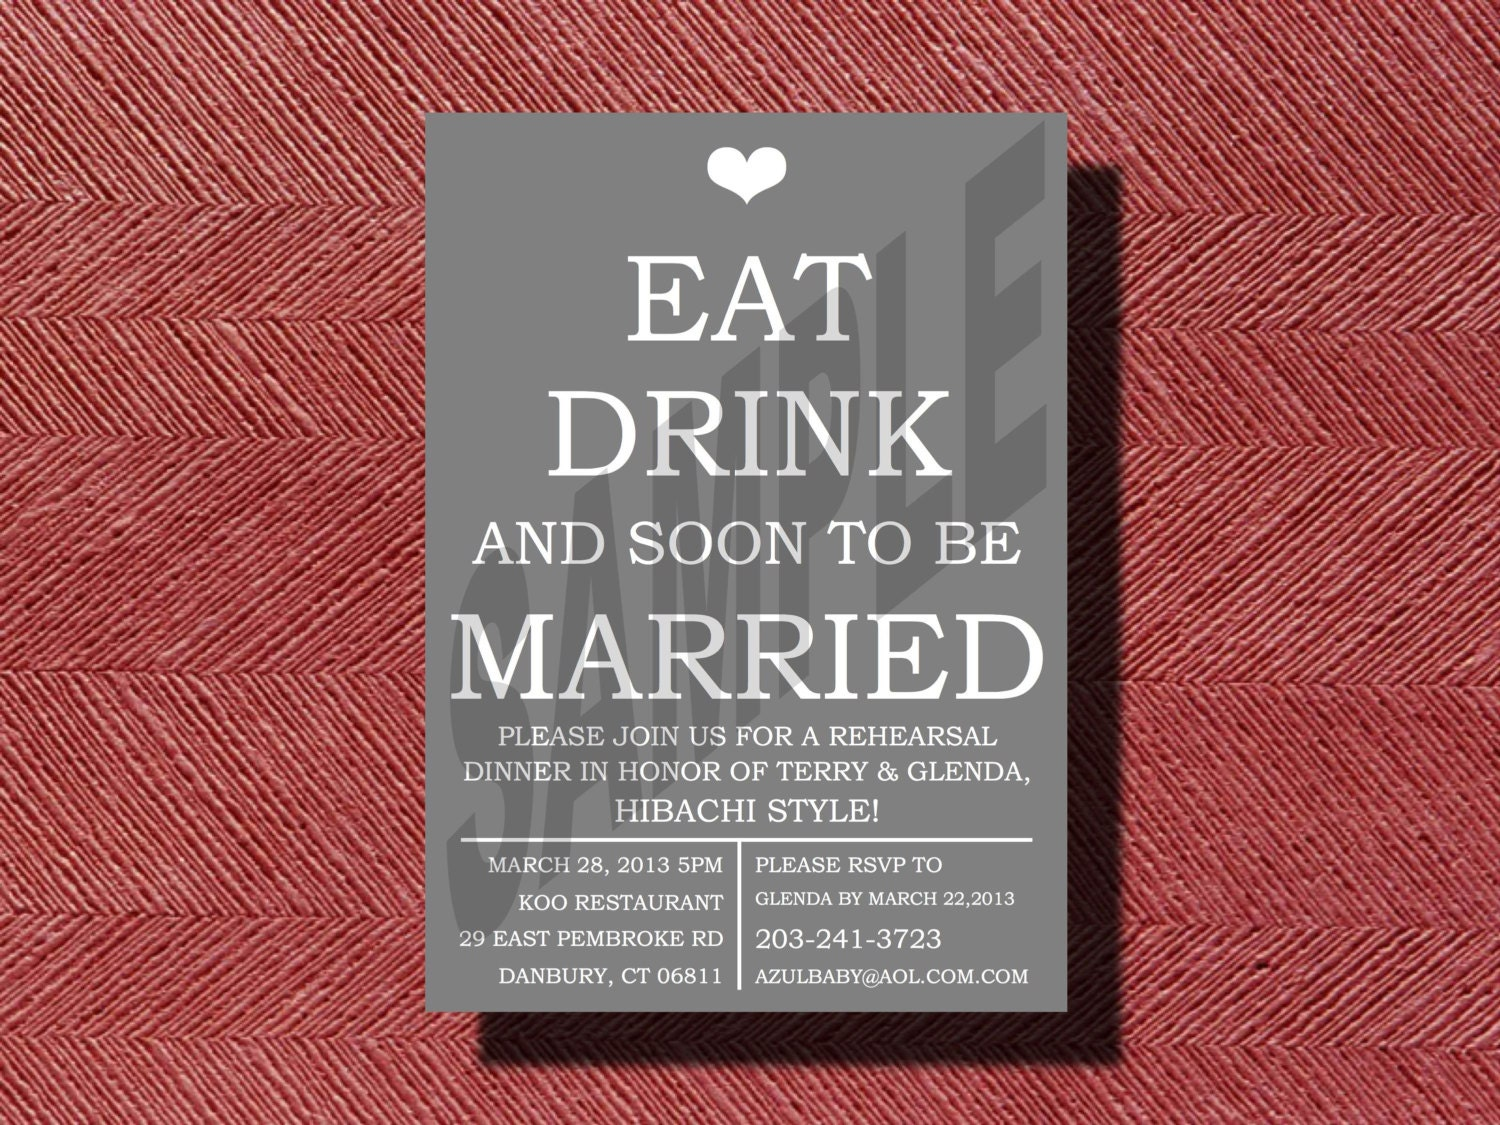 Wedding Welcome Dinner Invitation Wording: Fun Rehearsal Dinner Invitation DIY